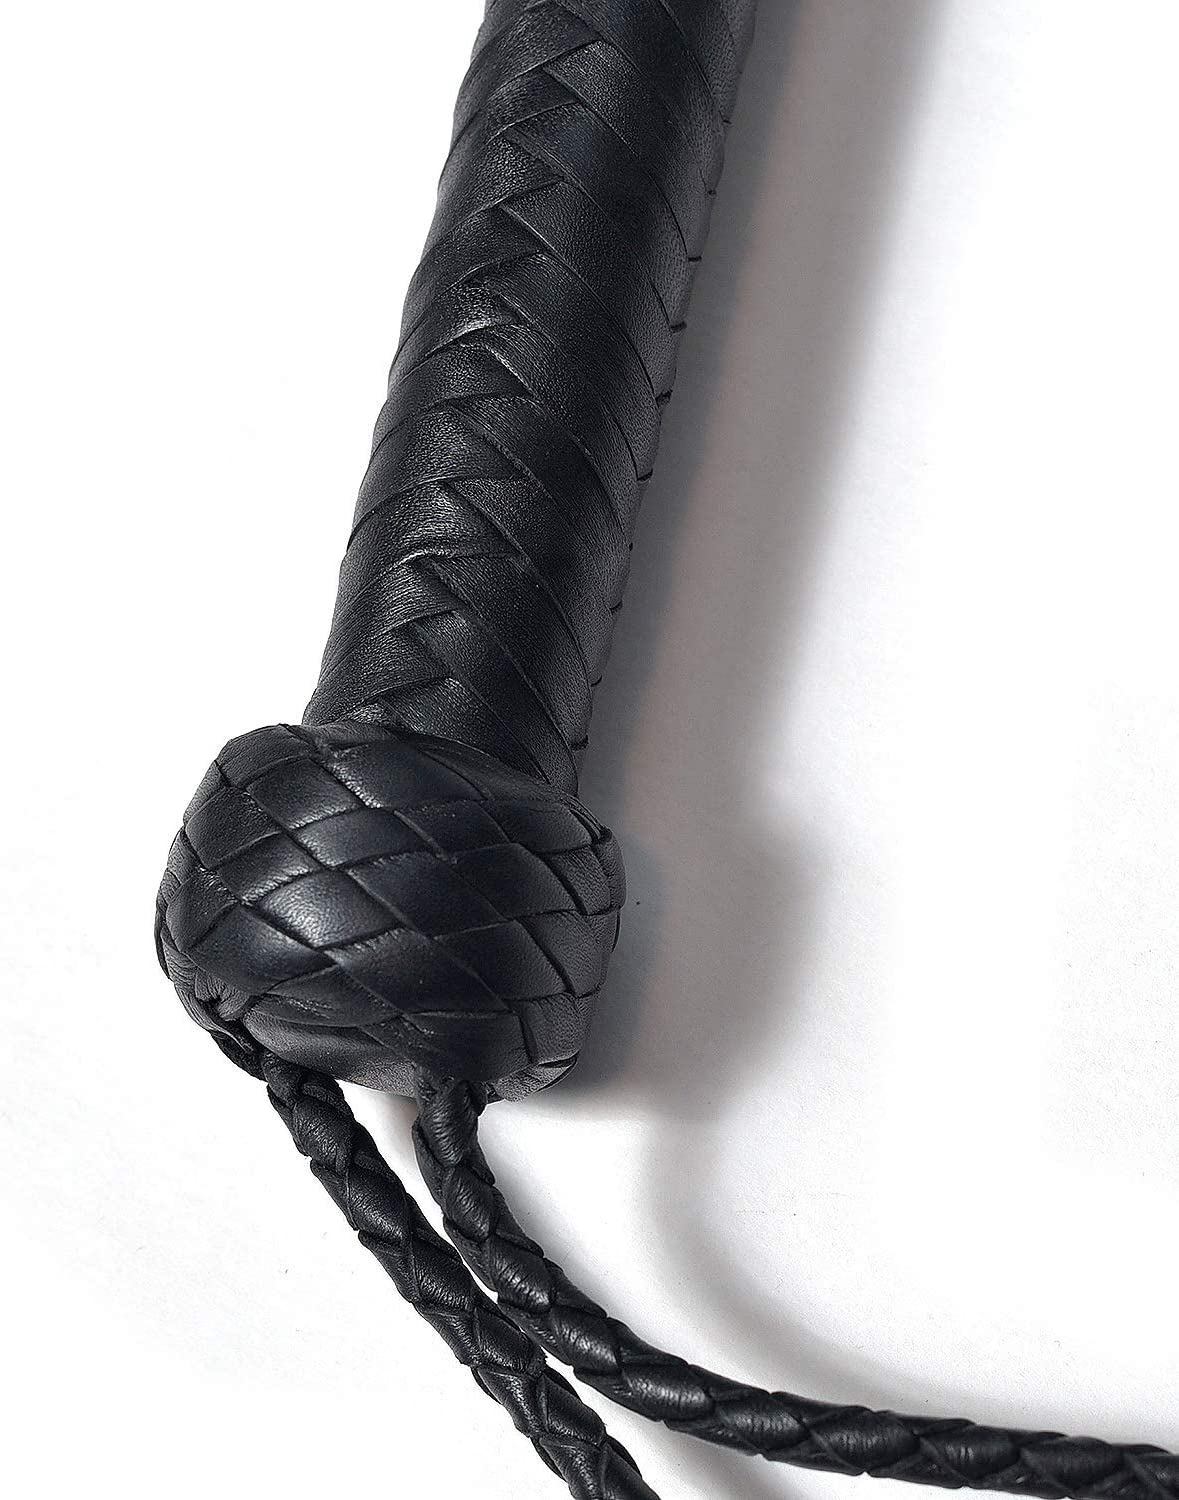 Fully Handmade Genuine Leather Whip Plait Weaved Riding Crops Whip Horse /& Bull Obedience Training Whips Black BARE SUTRA Training Tails 3 feet, Black Braided Plait Handle